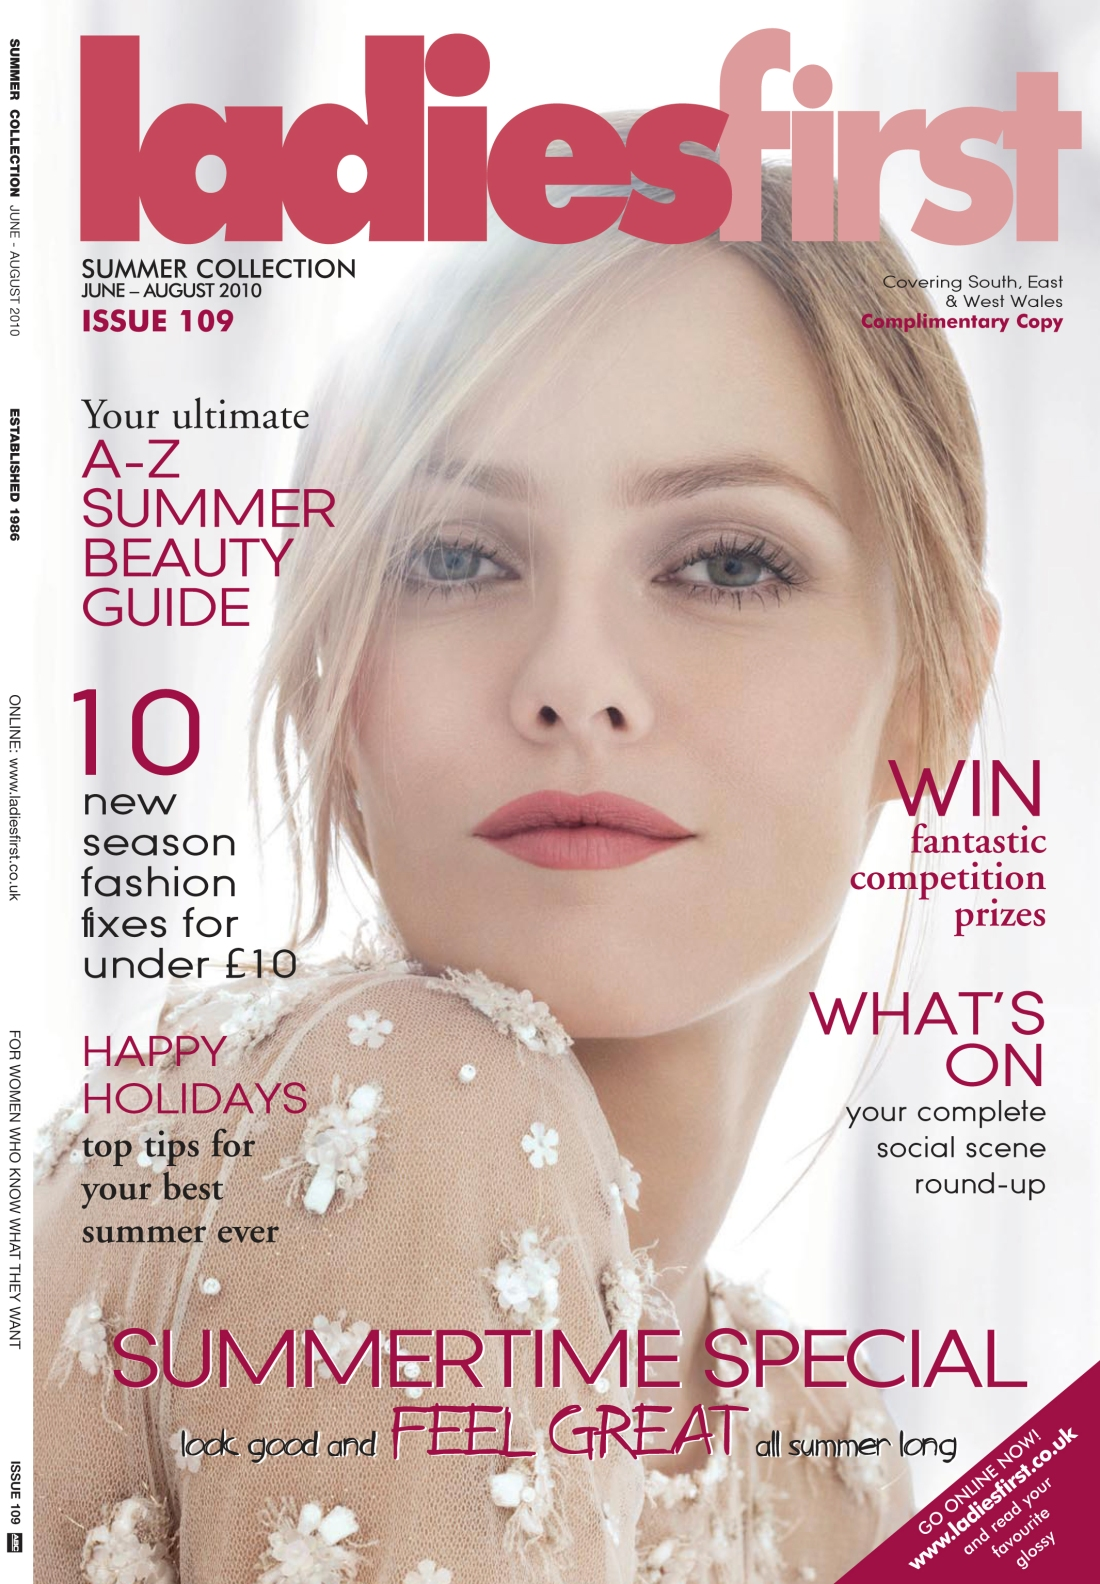 Ladies First Summer 2010 issue- front cover-Amy Lewis